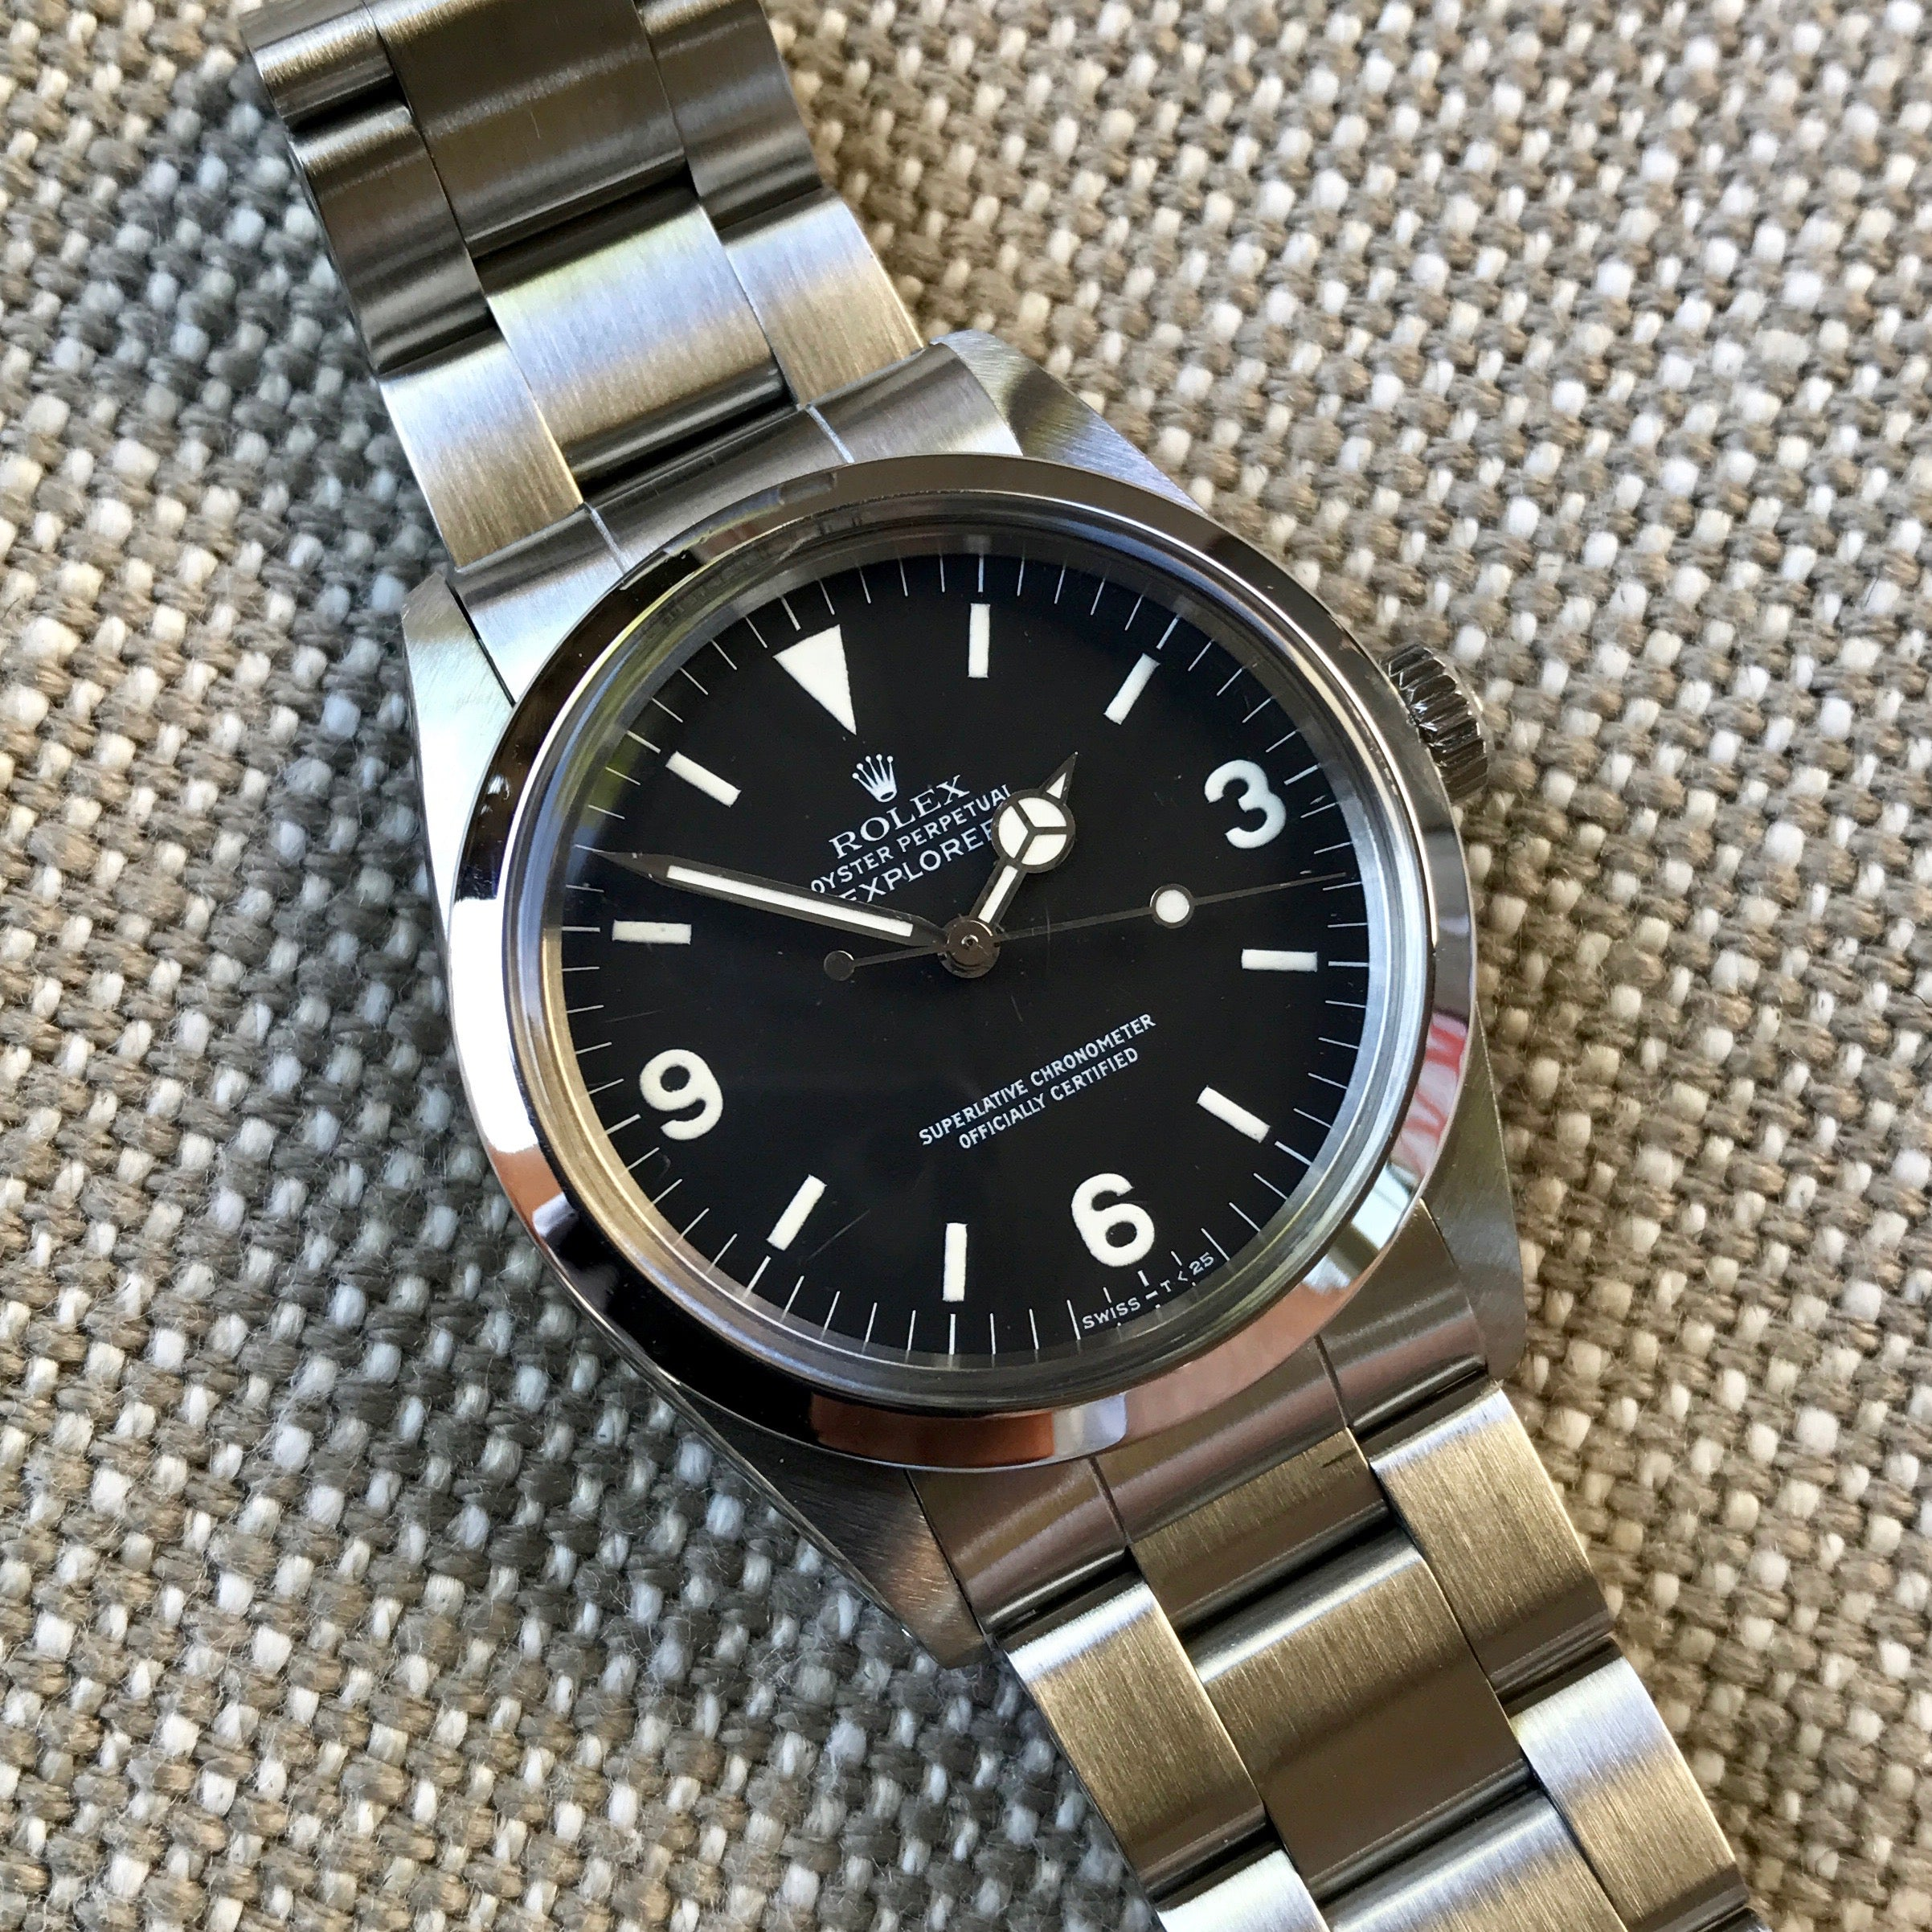 Vintage Rolex Explorer 1016 R Serial Stainless Steel Caliber 1570 Automatic 1987 Wristwatch - Hashtag Watch Company